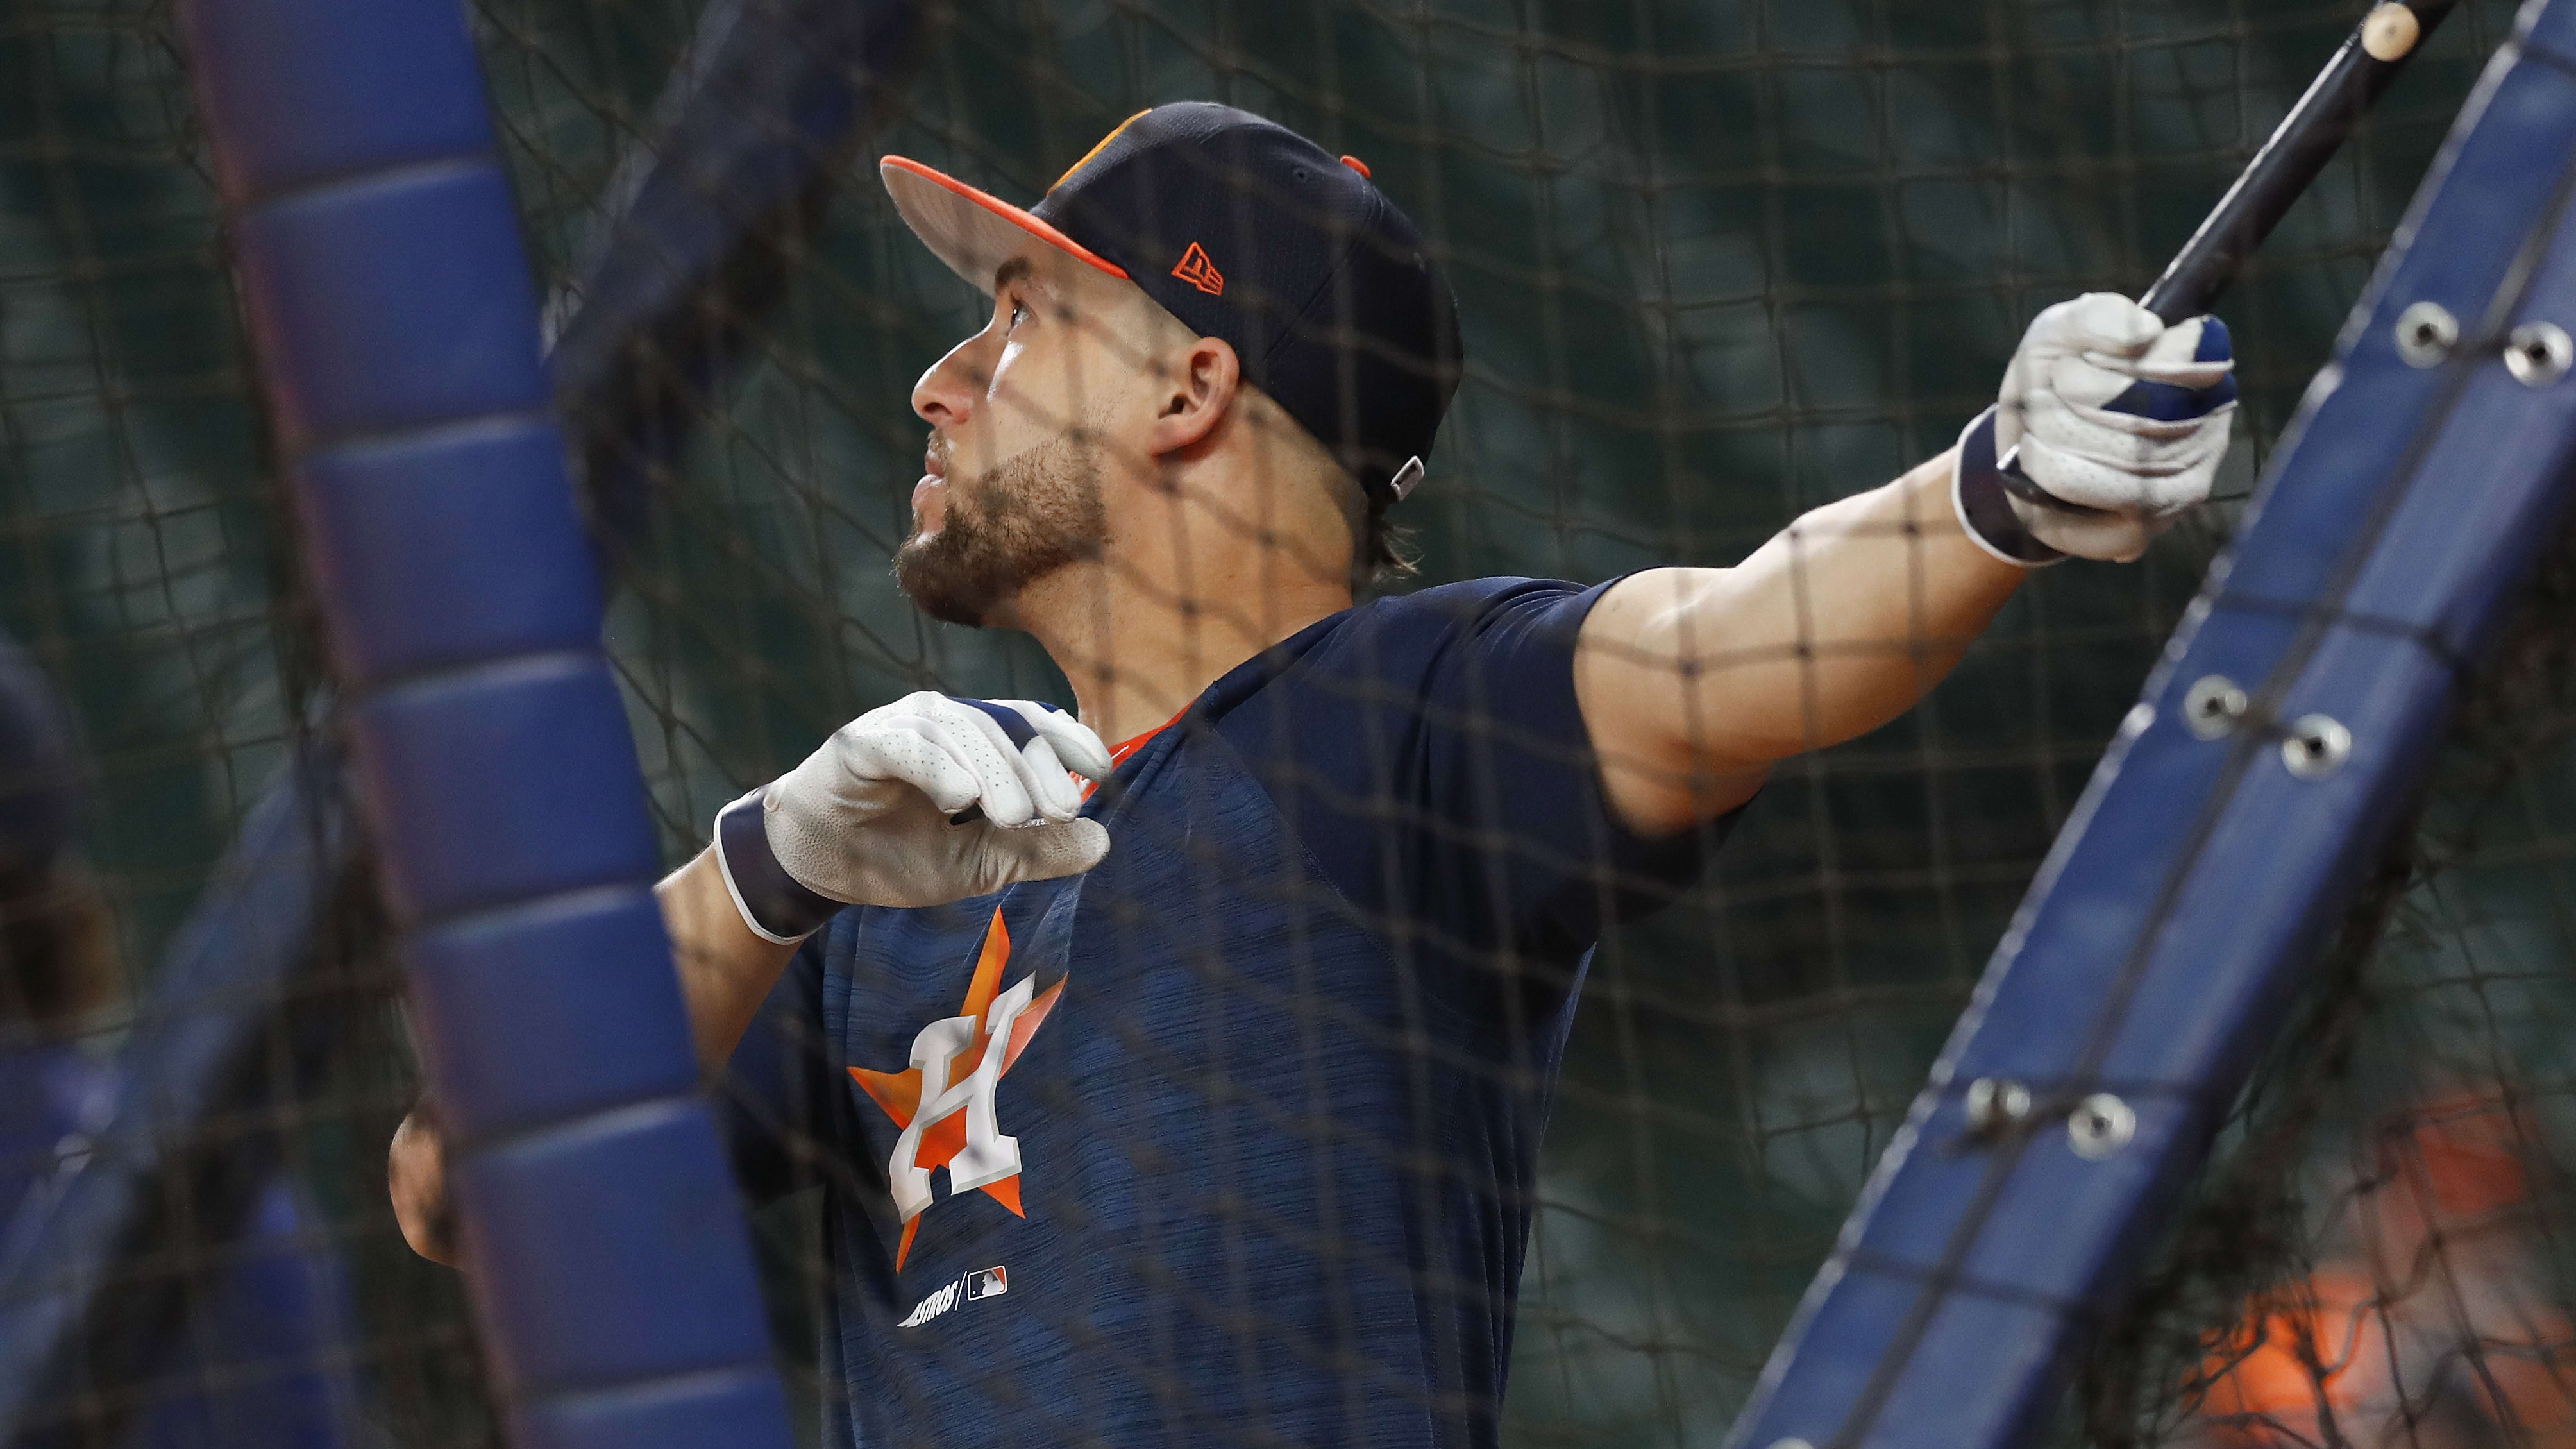 HOUSTON, TX - MAY 23:  George Springer #4 of the Houston Astros takes batting practice before the game against the Chicago White Sox at Minute Maid Park on May 23, 2019 in Houston, Texas.  (Photo by Tim Warner/Getty Images)